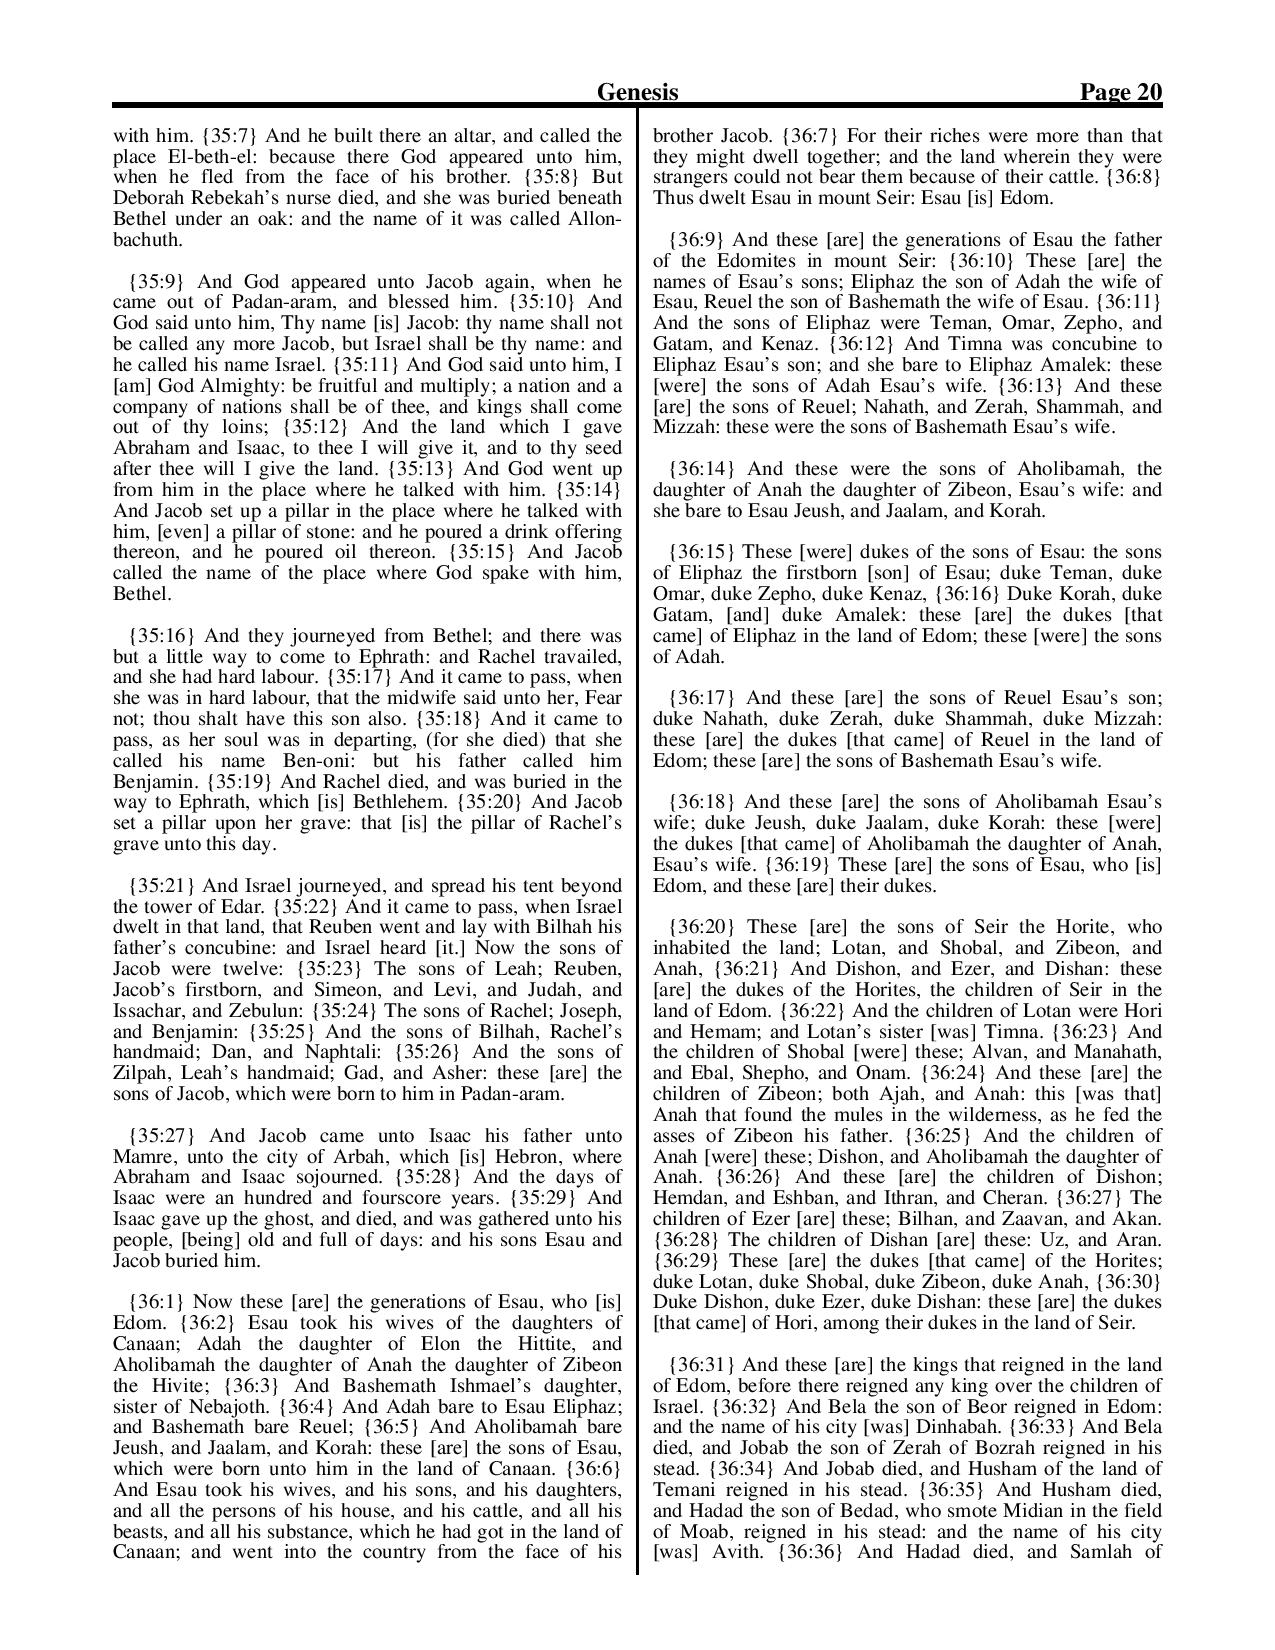 King-James-Bible-KJV-Bible-PDF-page-041